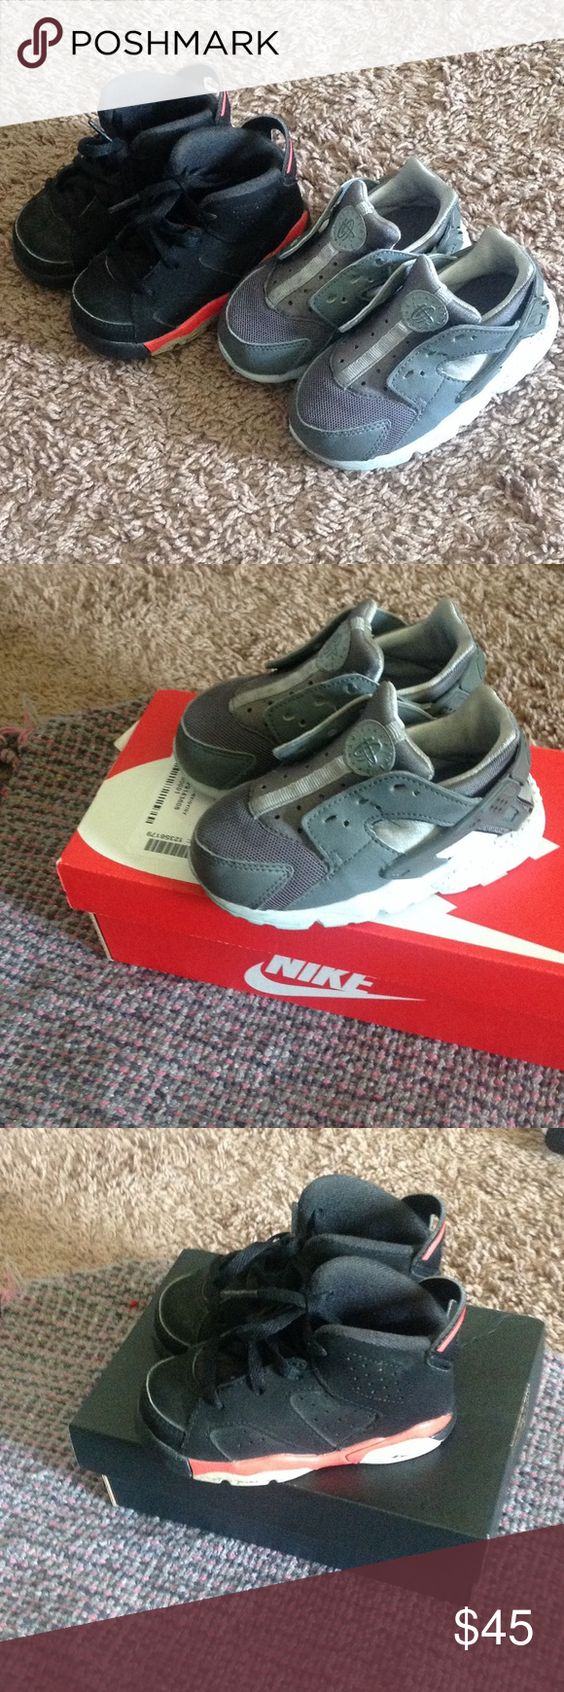 Nike and Jordan Toddler Boy Sneakers Size 7 Grey Nike Huaraches worn and missing shoelaces, Jordan 5 Retro Low Black and Infra Red.. Both sneakers look used.. Will provide better pic if needed Shoes Sneakers